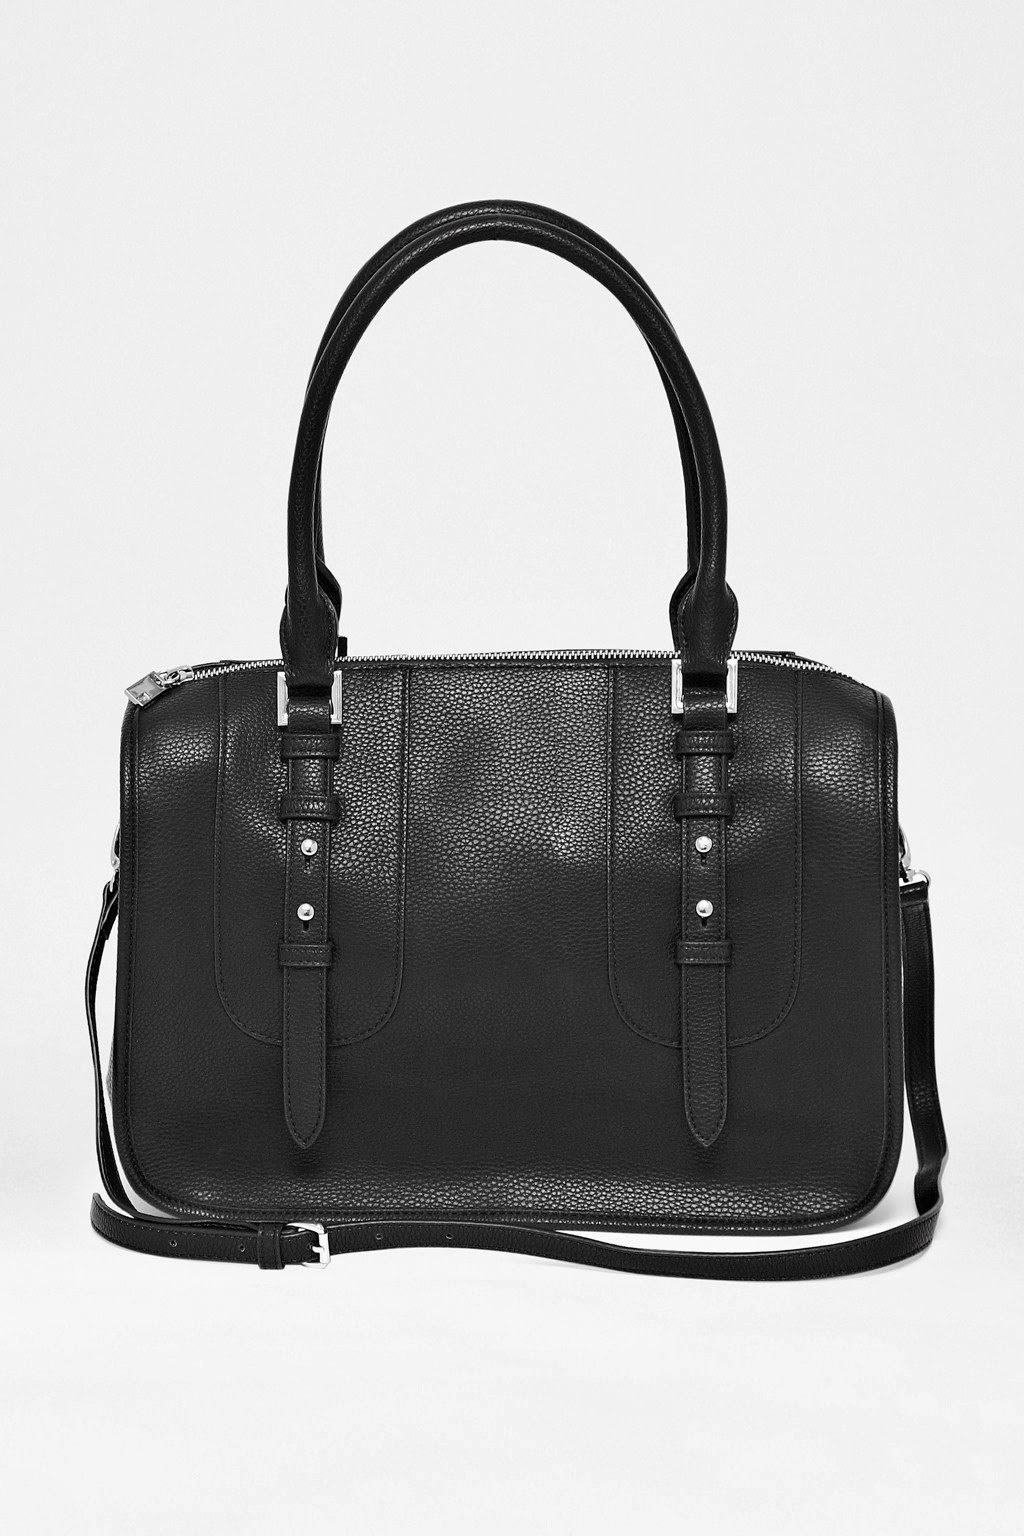 french connection black handbag